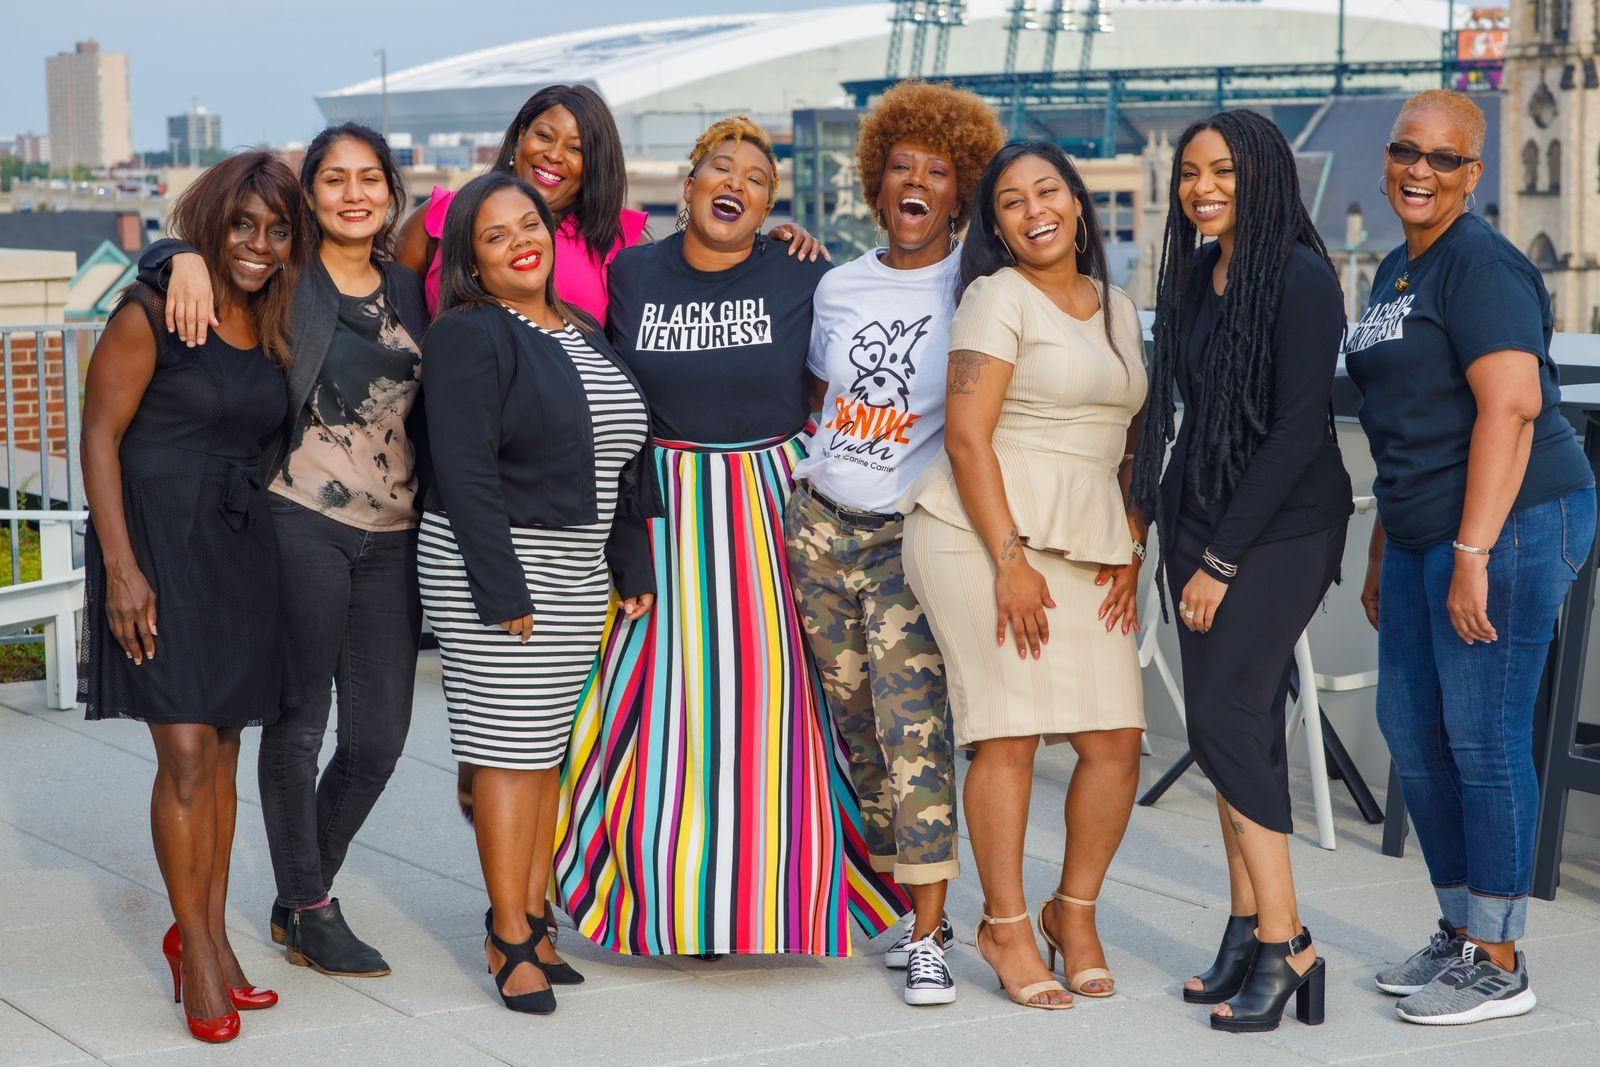 How Black Girls CODE and Black Girl Ventures empower and inspire Black women